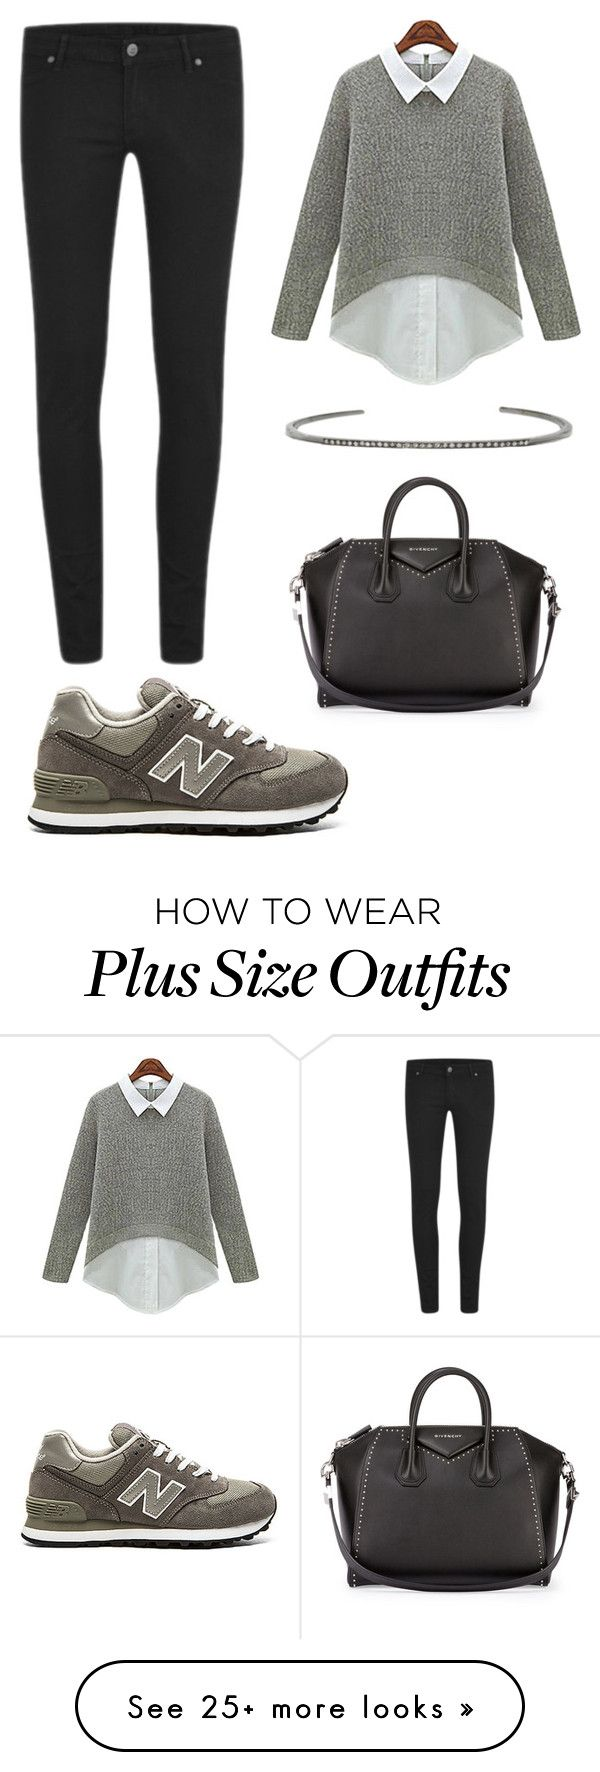 """Untitled #376"" by gigi3646 on Polyvore featuring Cheap Monday, New Balance, ADORNIA and Givenchy"